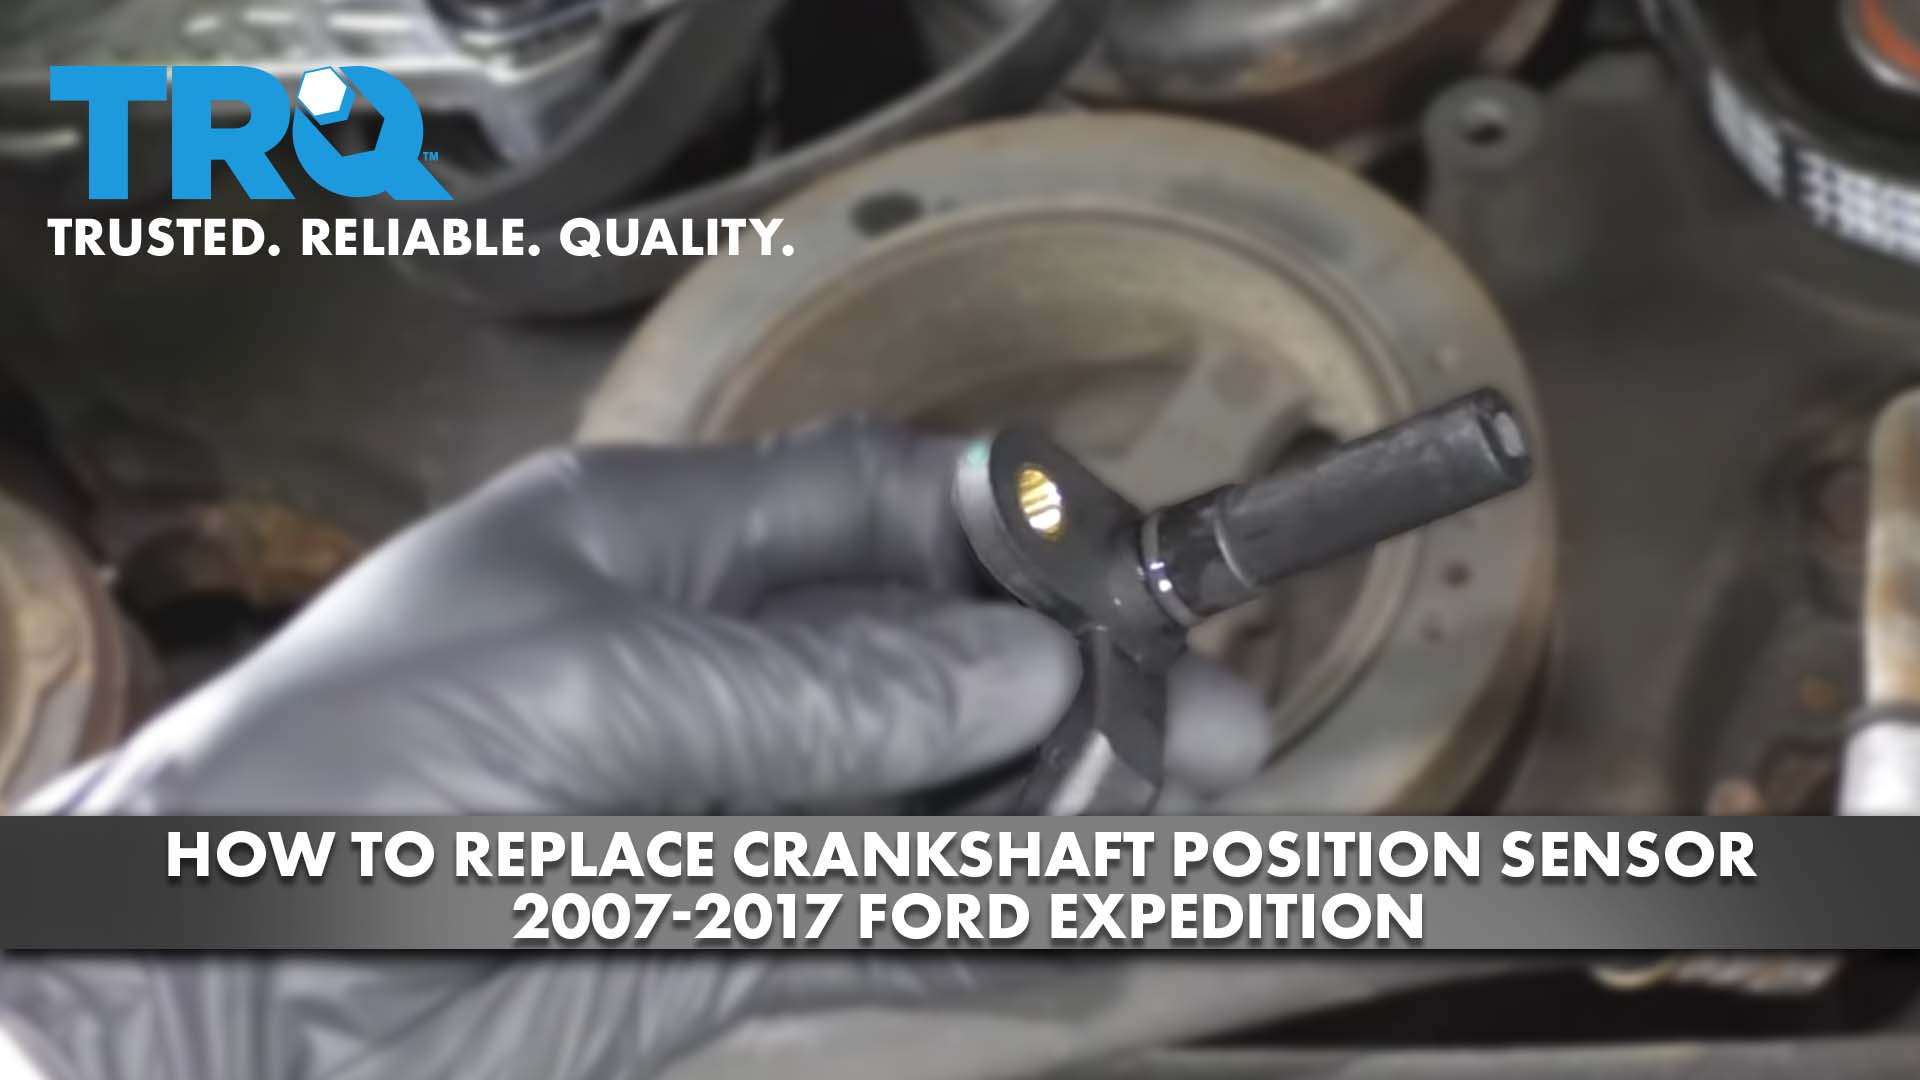 How to Replace Crankshaft Position Sensor 2007-17 Ford Expedition